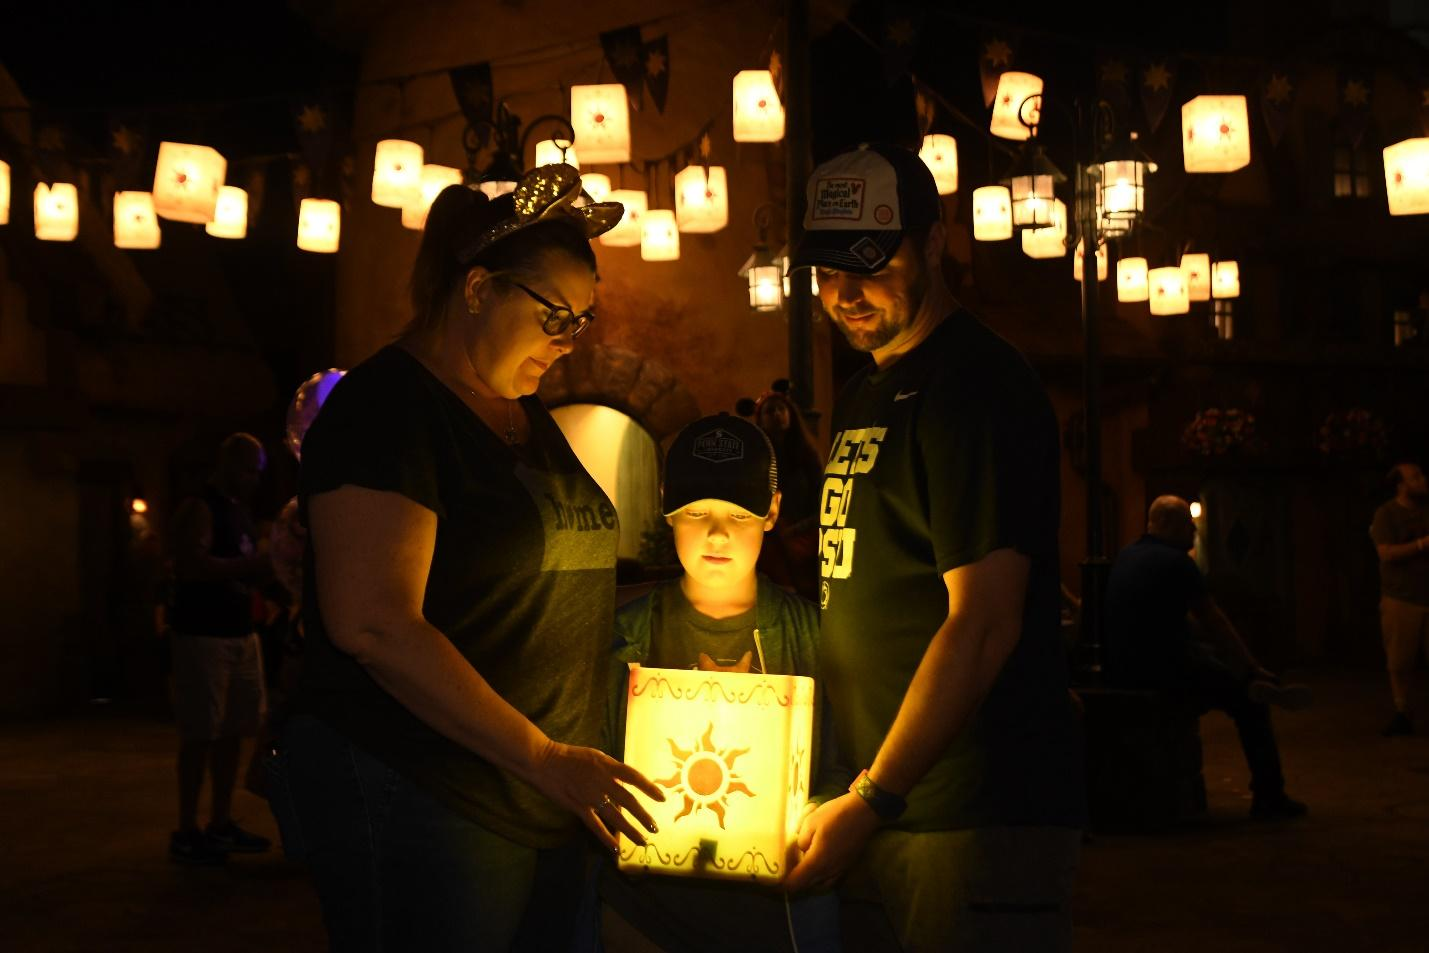 Disney's Memory Maker photo captures a family enjoying the warm glow of Tangled lantern light.